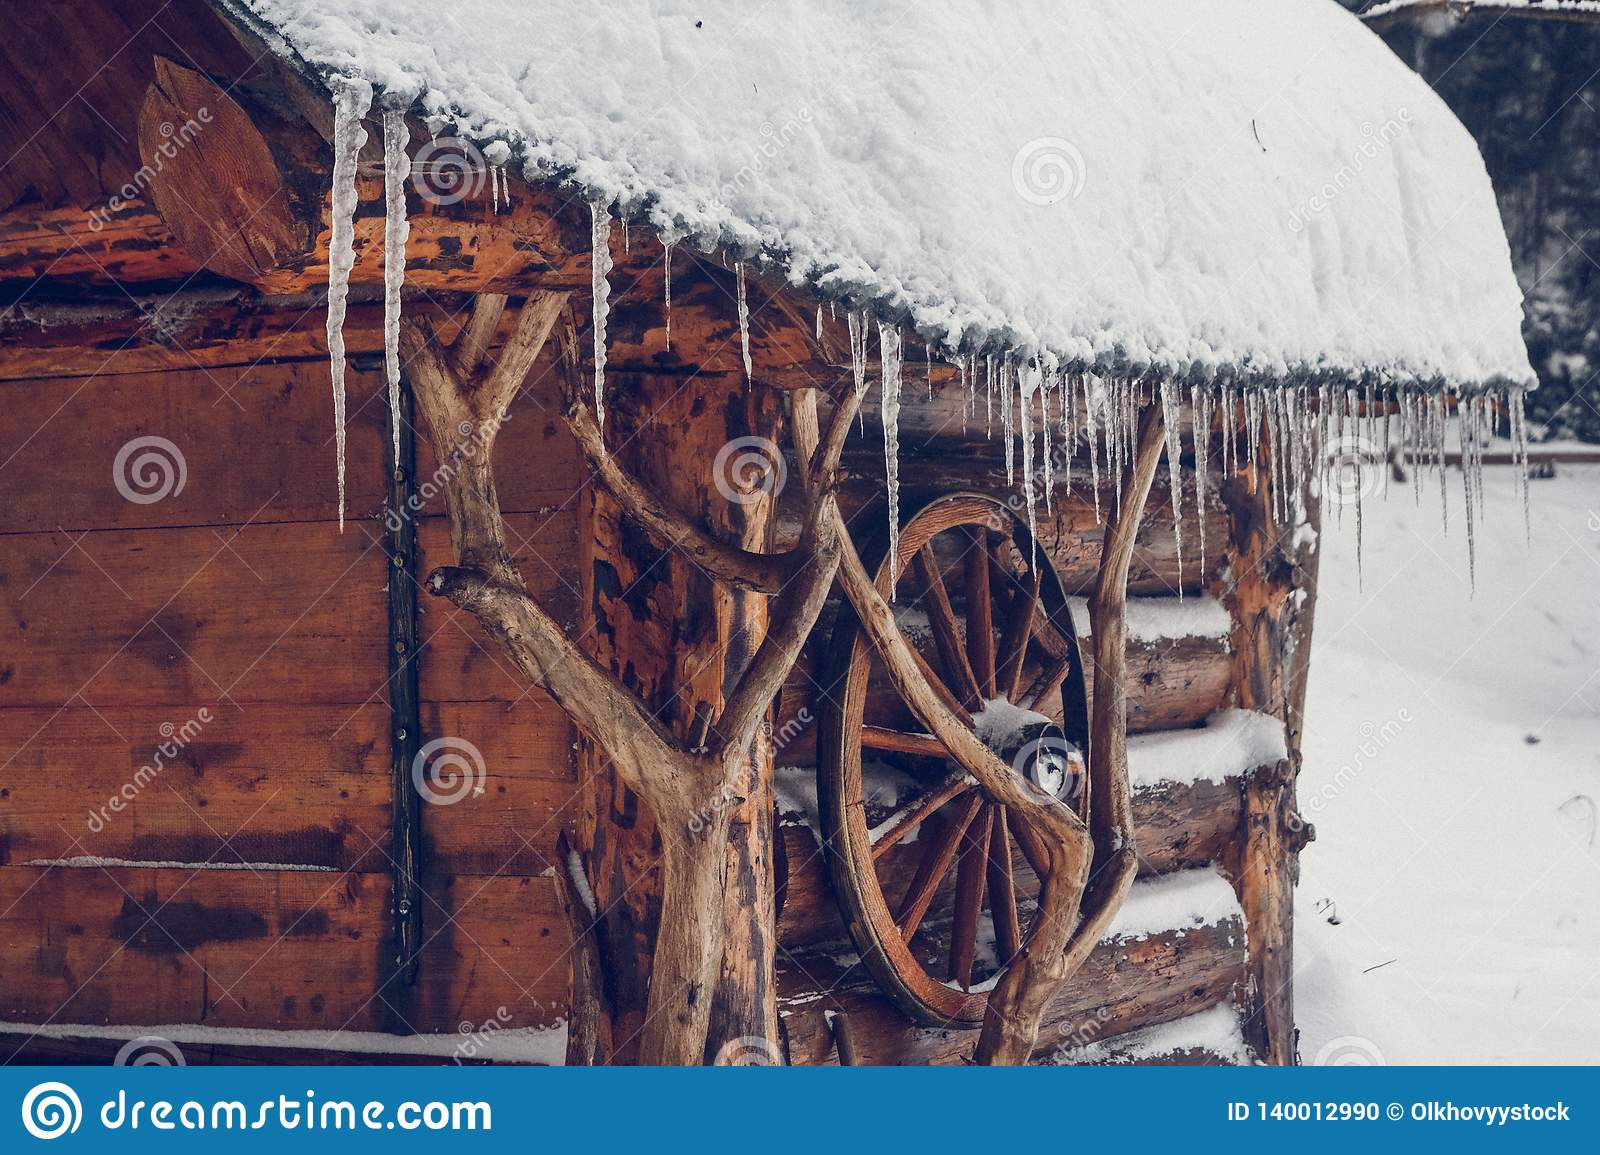 Icicles hang from the roof of a wooden house in the forest near the mountain ash